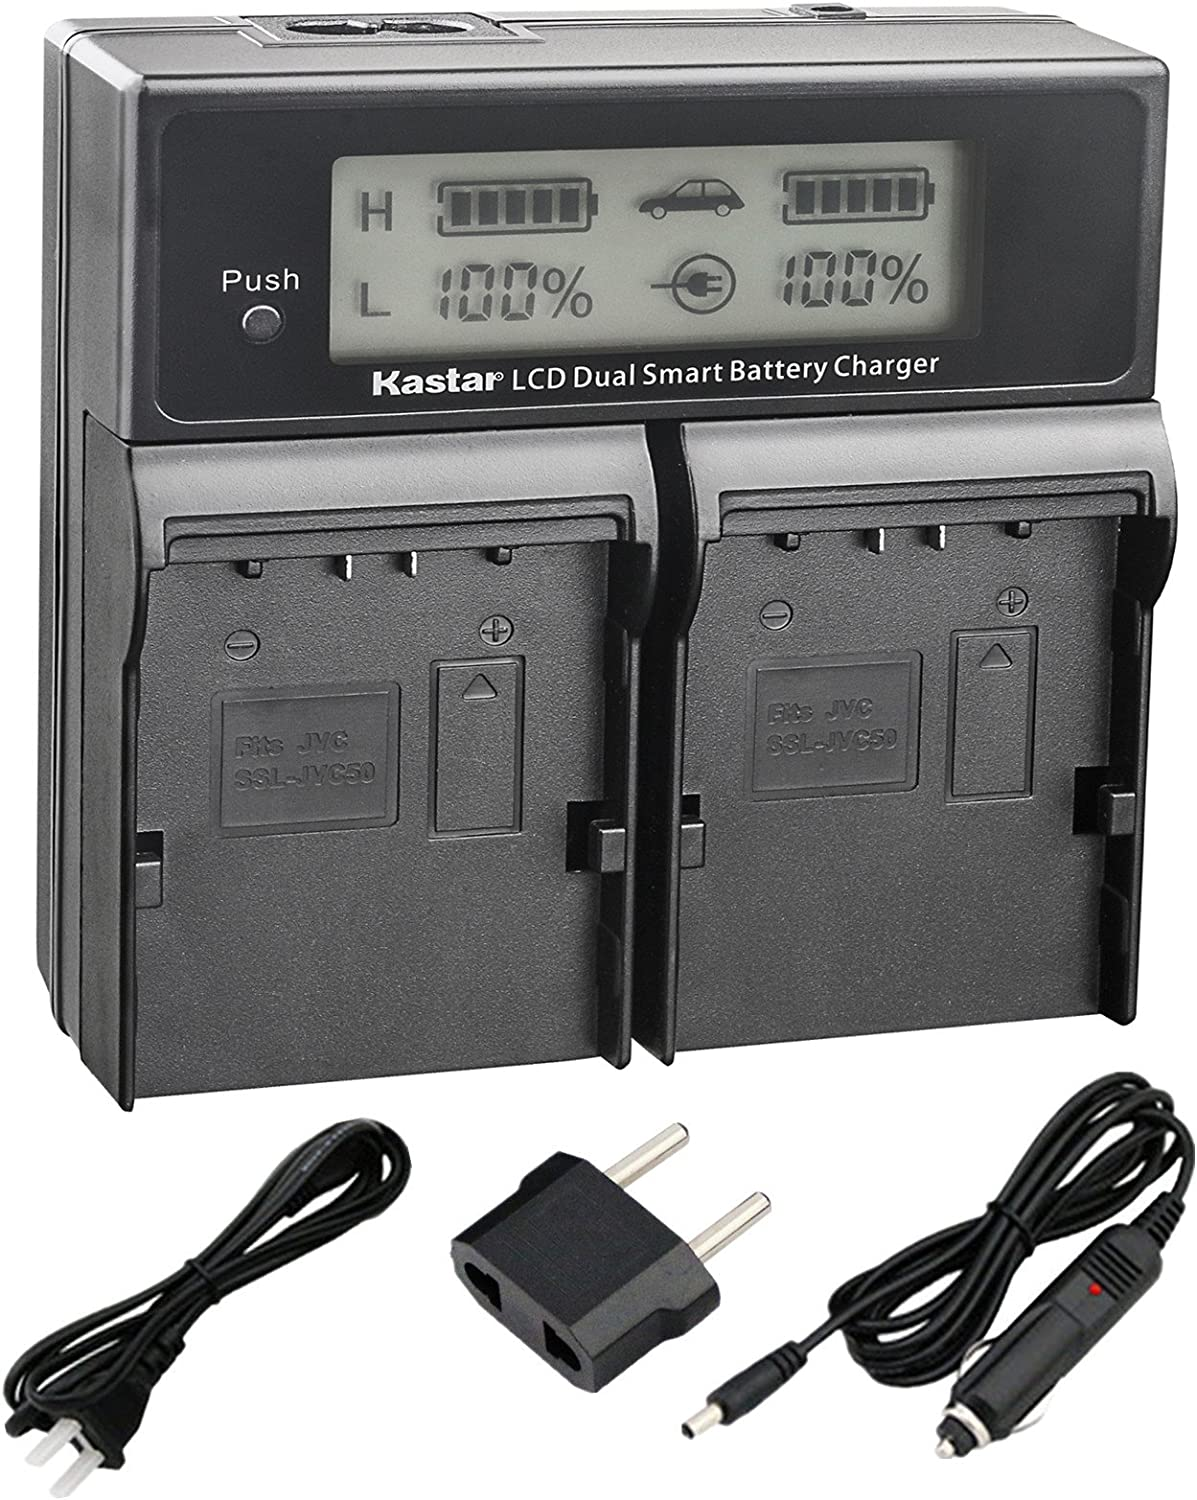 Kastar LCD Dual Smart Fast Charger Kit for JVC SSL-JVC50 and JVC GY-HMQ10, GY-LS300, GY-HM200, GY-HM600, GY-HM600E, GY-HM600EC, GY-HM650 Camcorders